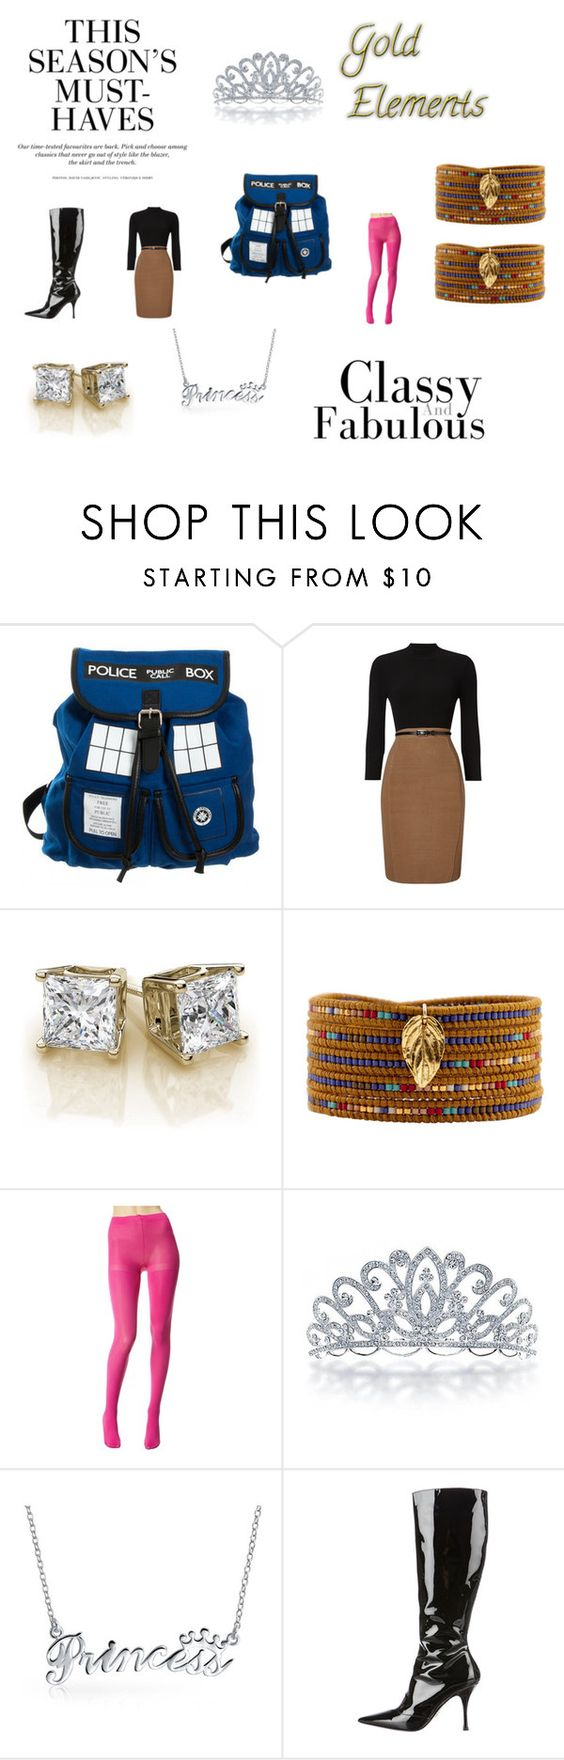 """""""Dress me like the TARDIS 6"""" by chrisone ❤ liked on Polyvore featuring Phase Eight, Chan Luu, H&M, Betsey Johnson, Bling Jewelry and Dolce&Gabbana"""